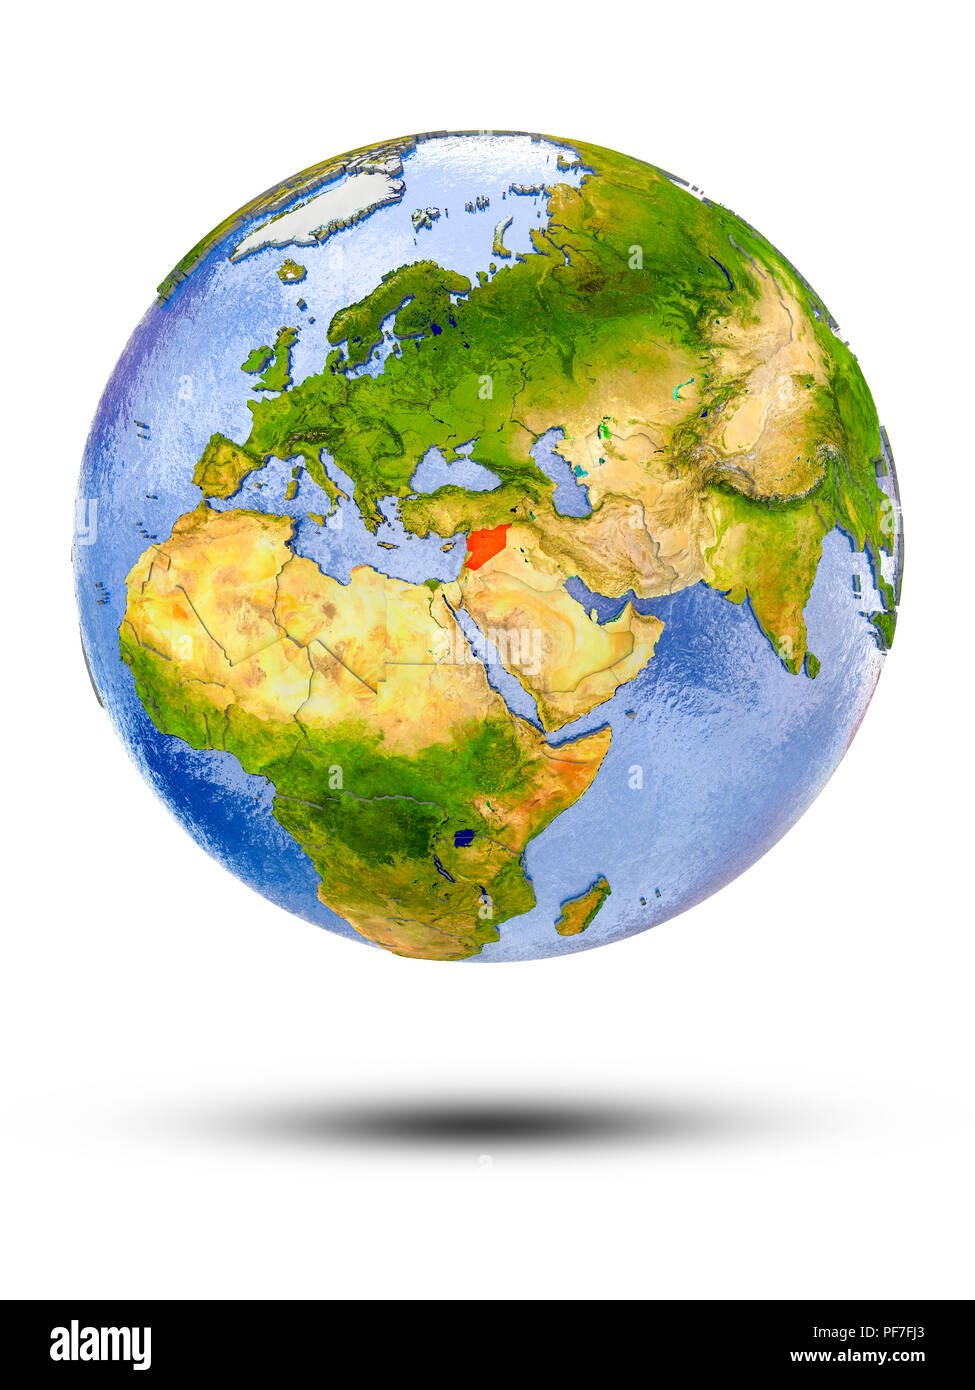 Syria on globe with shadow isolated on white background. 3D illustration. - Stock Image